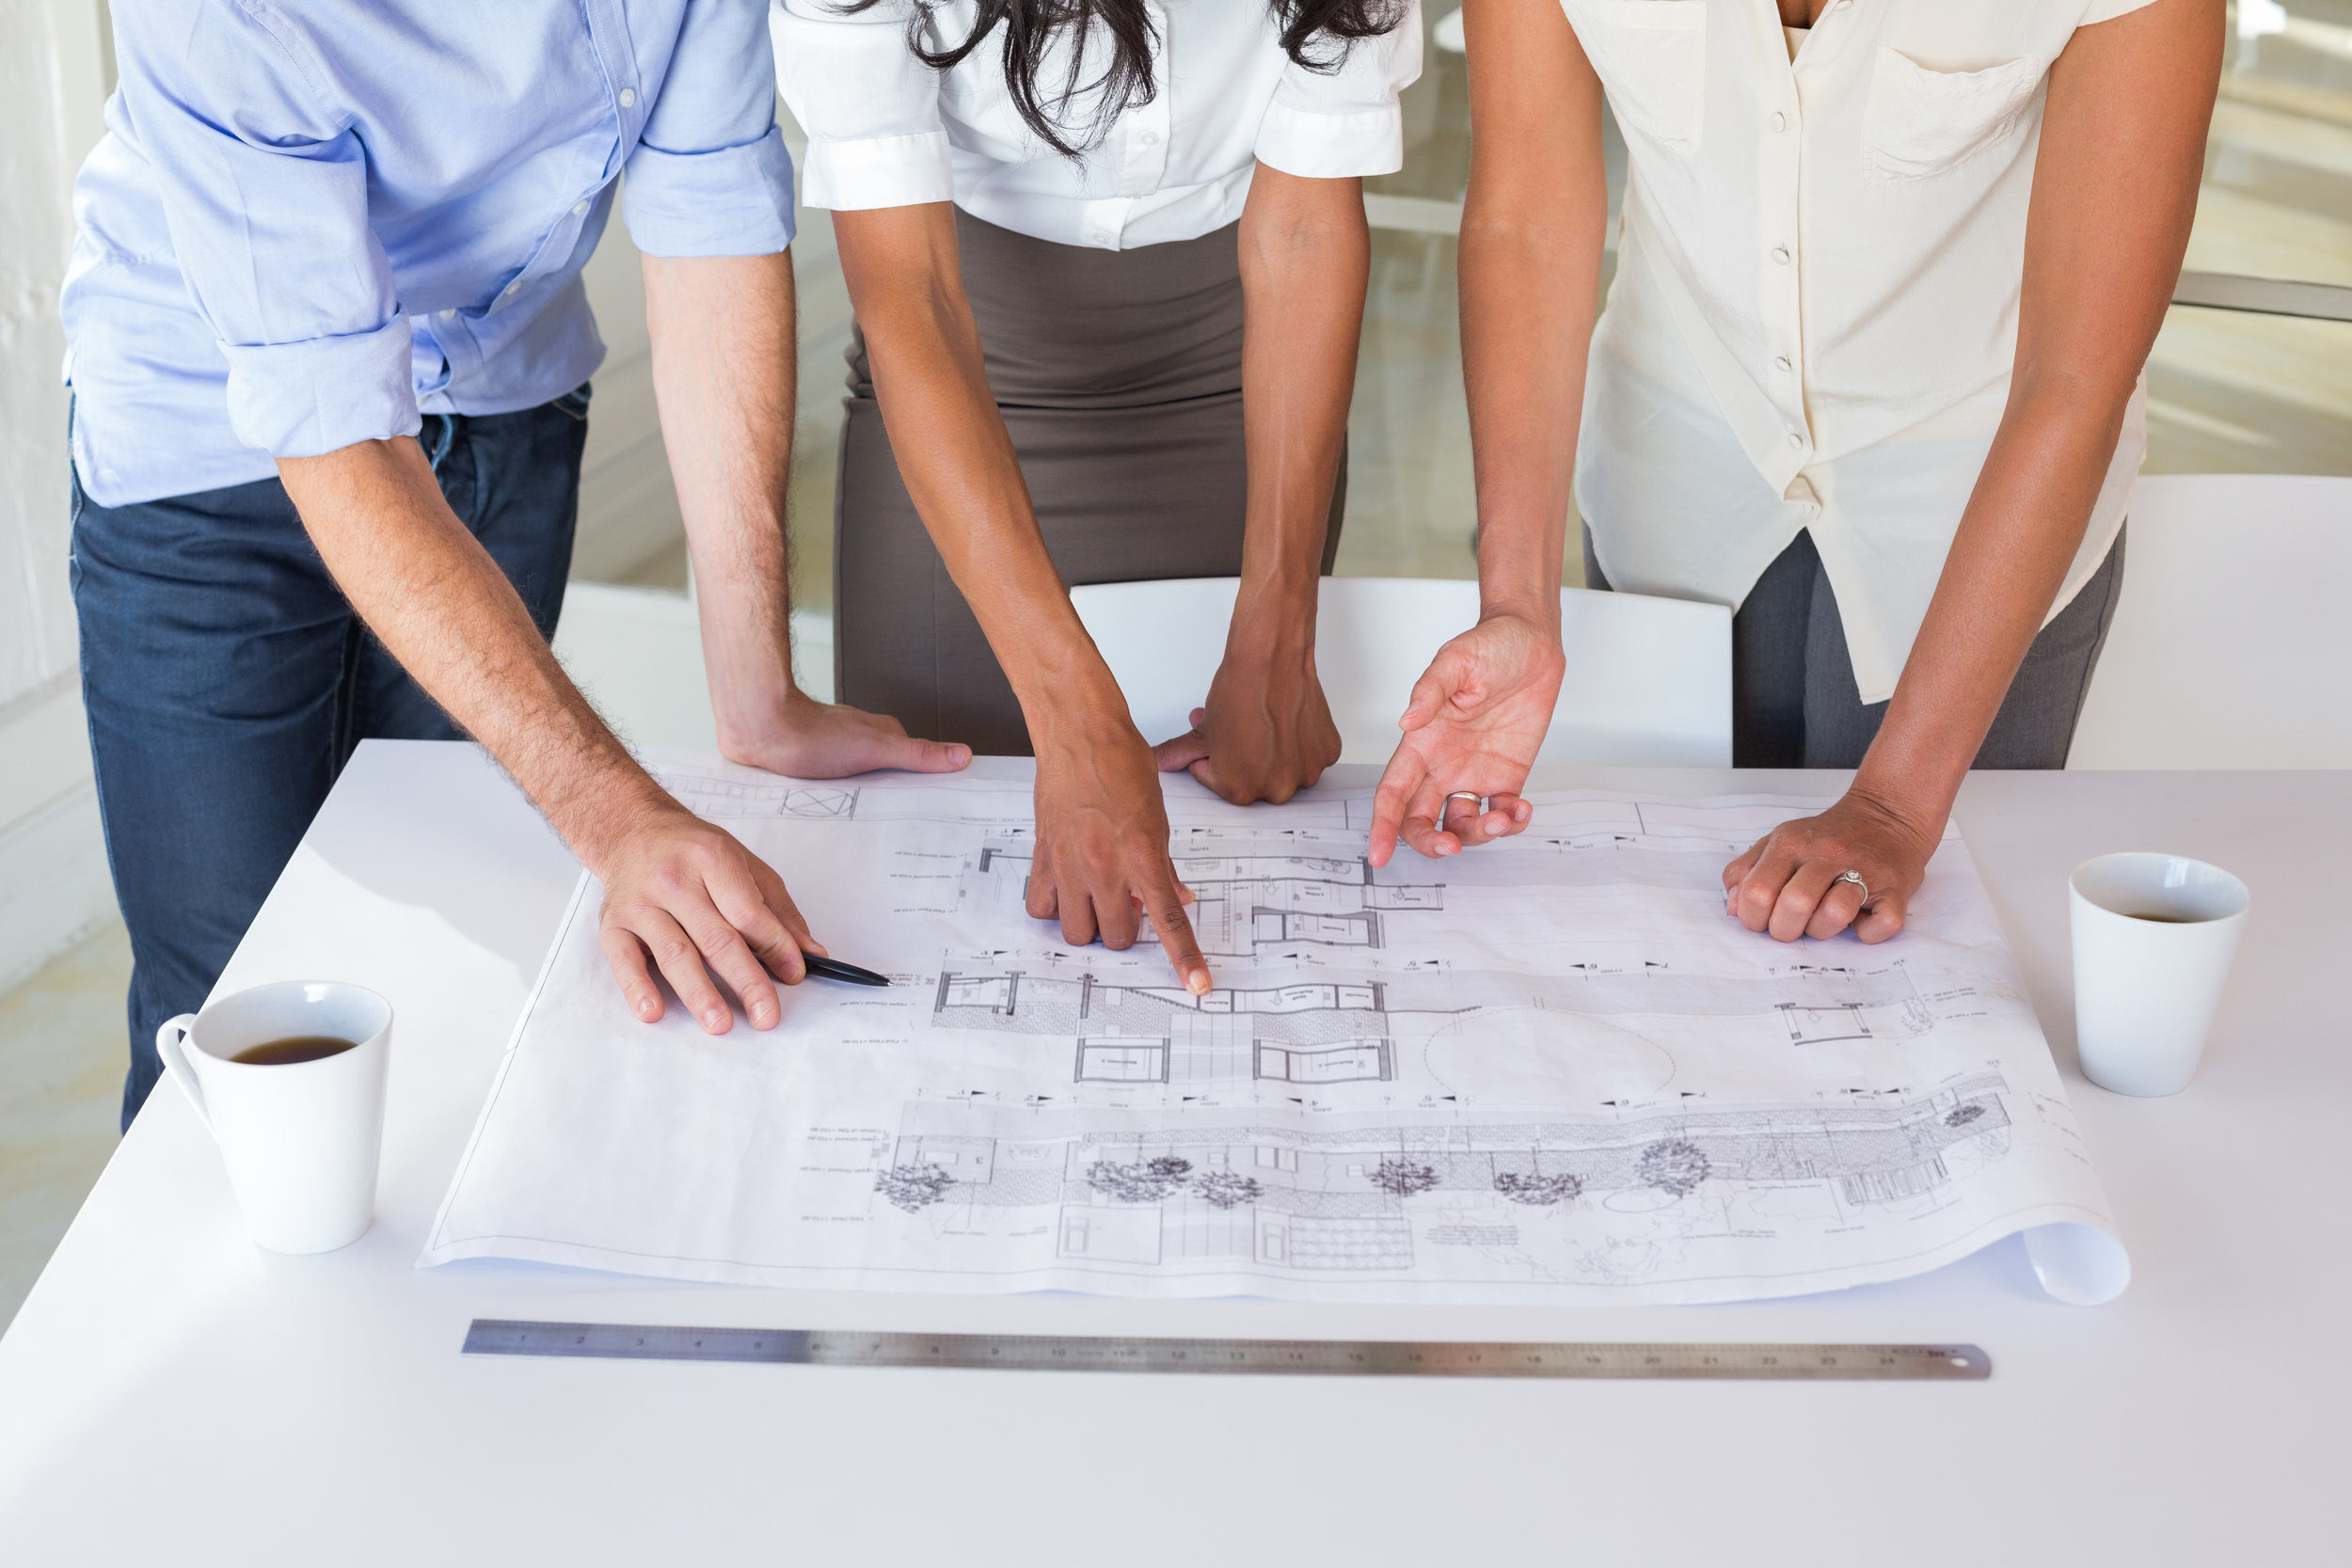 Why partner with us? - Download our guide to learn how architects, interior designers, and builders can benefit from a partnership with us.